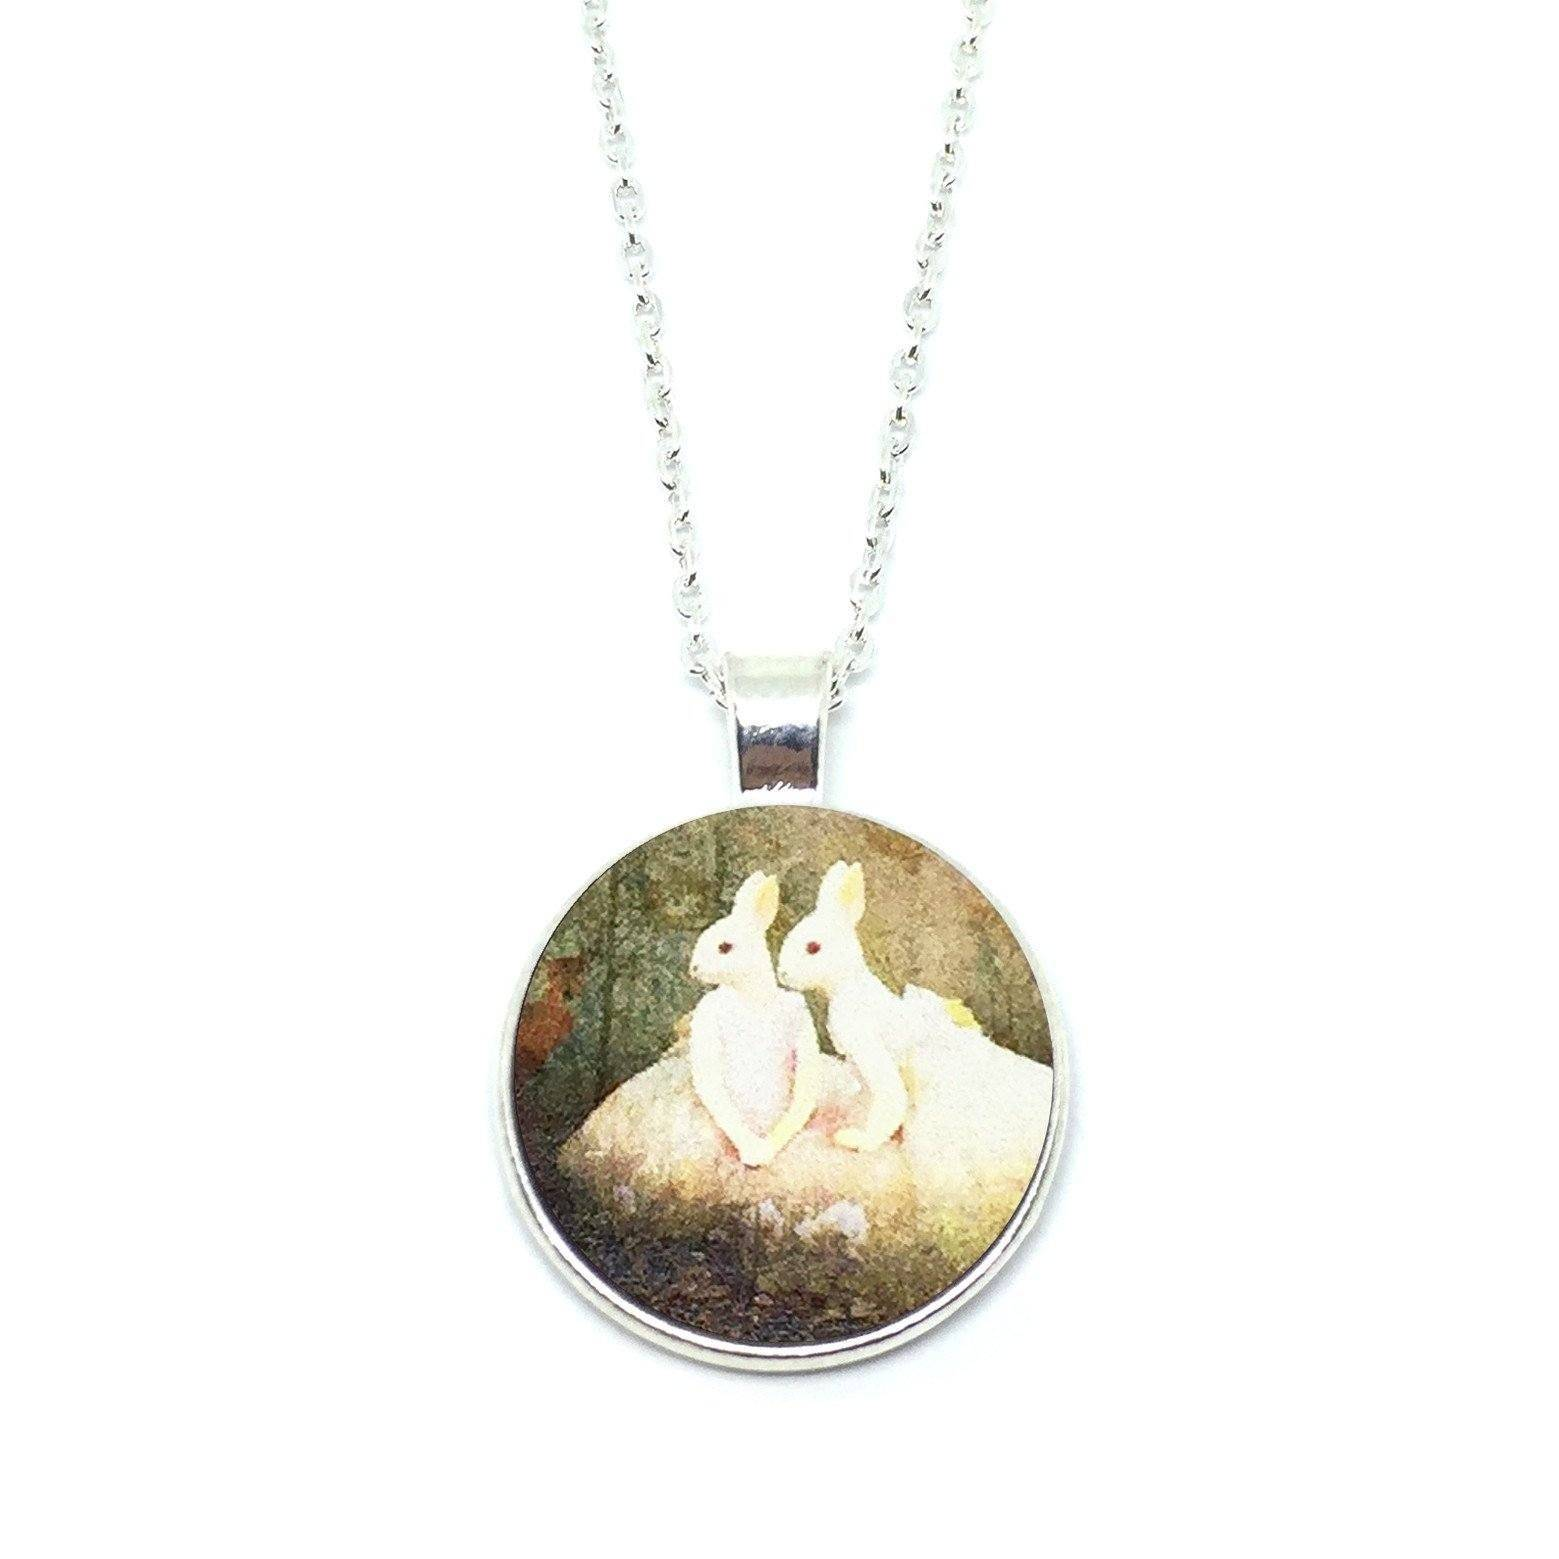 Mythical Lovely Rabbitgirls Necklace - Necklaces - Paperdaise Accessories - Naiise